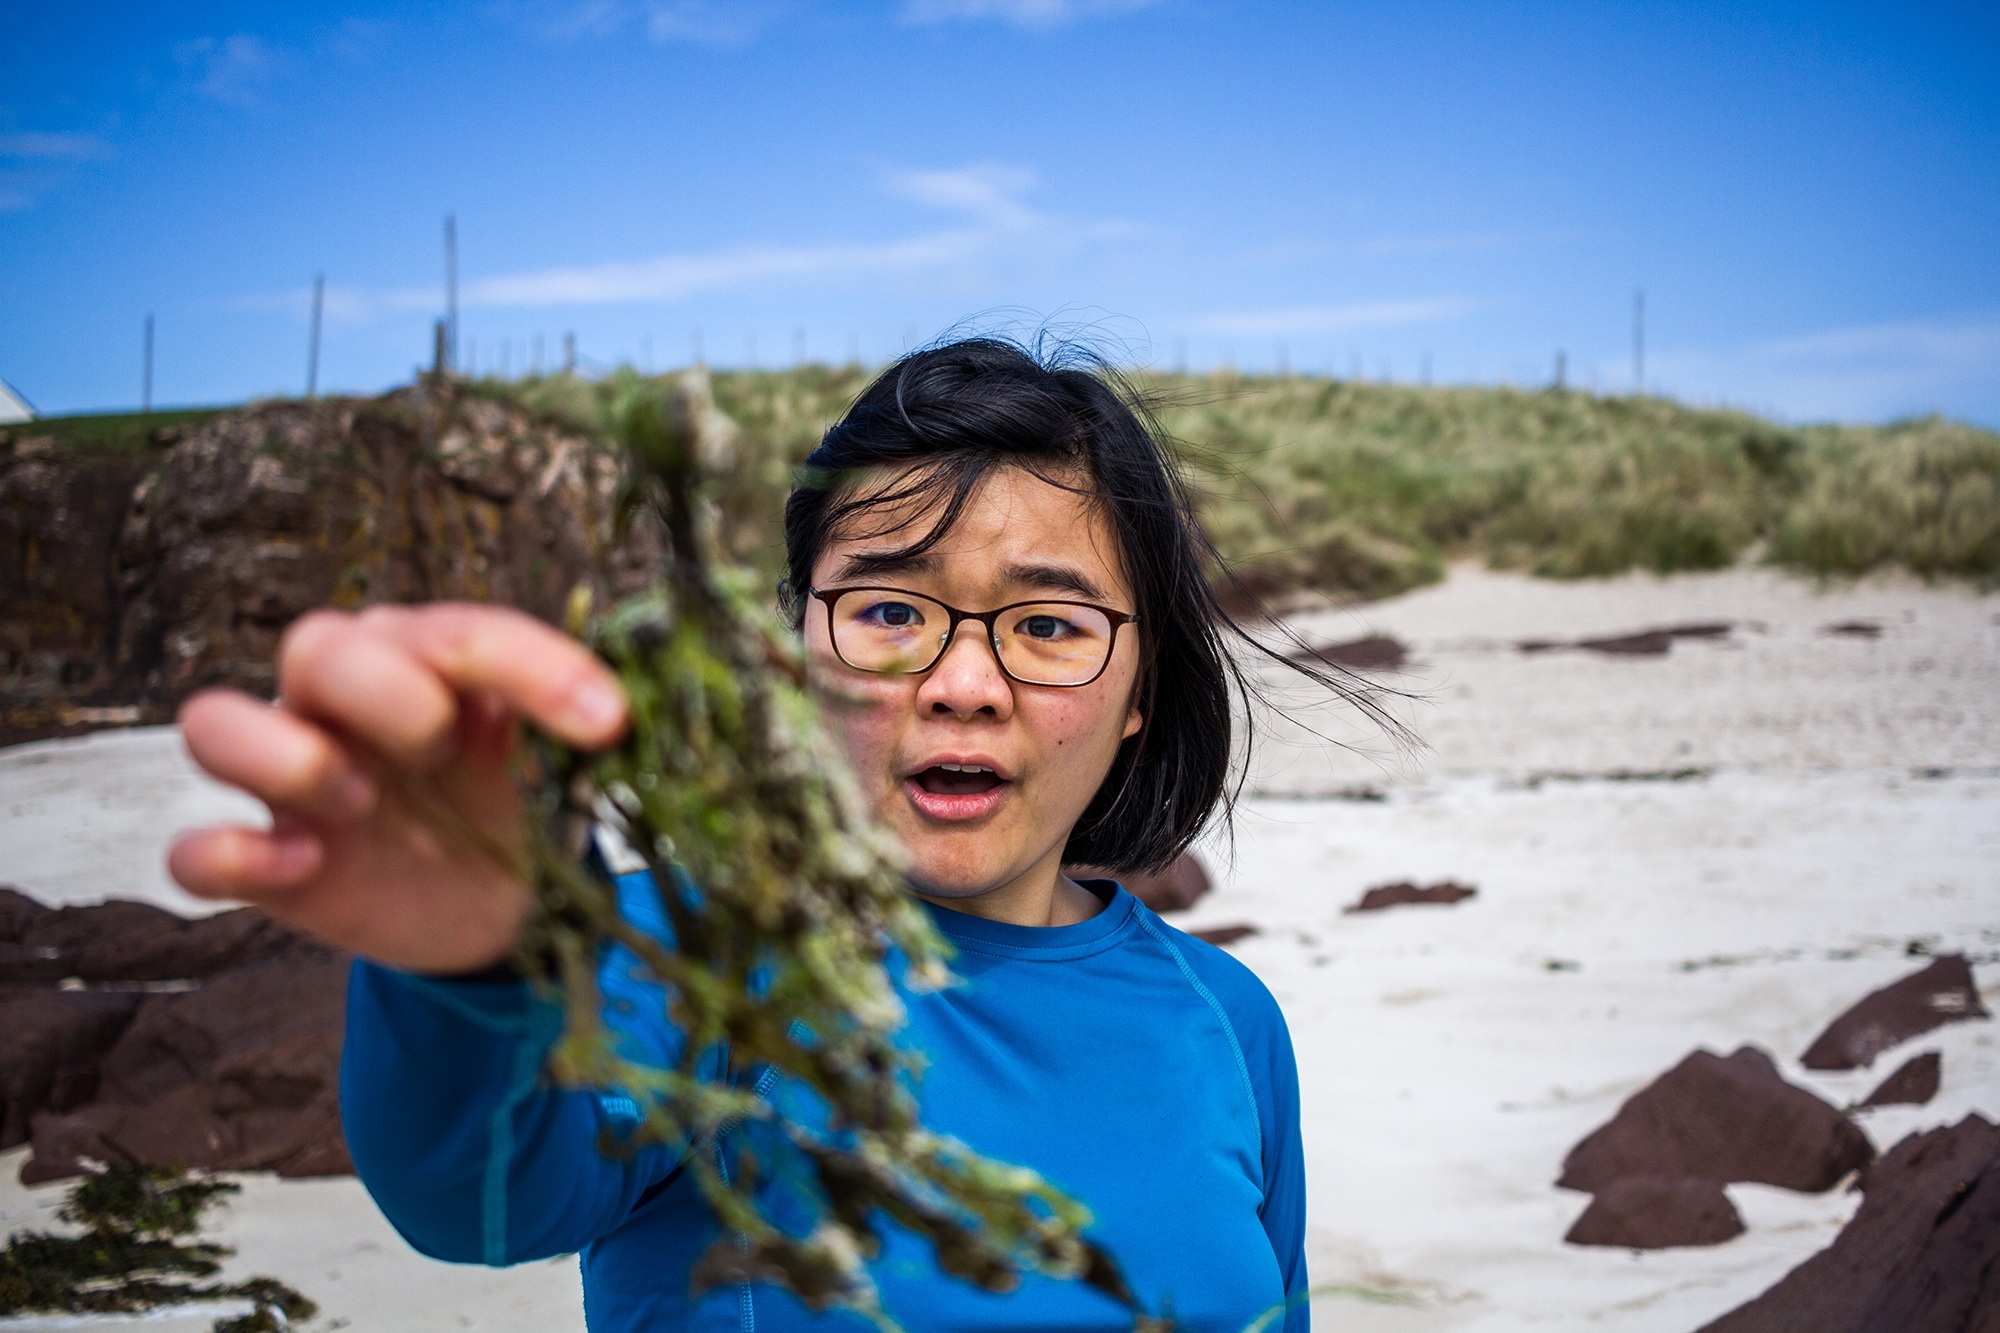 Esther picking up the seaweed in Assynt